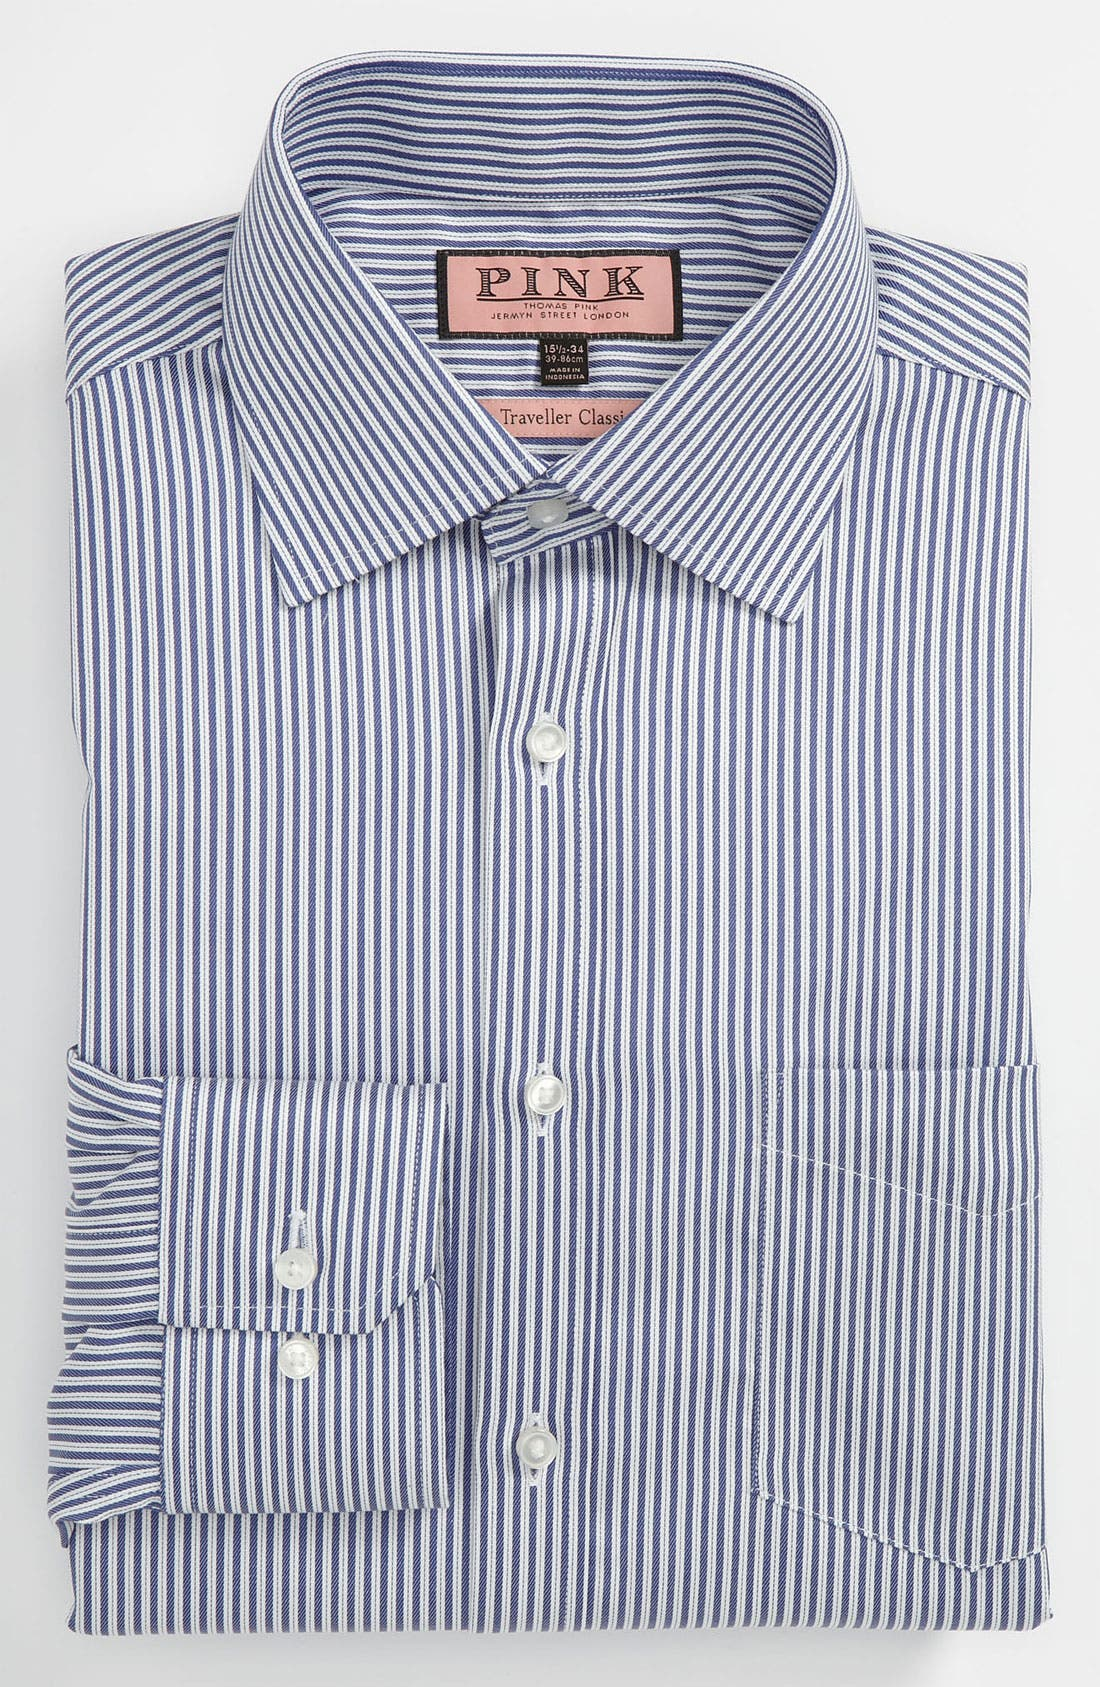 Main Image - Thomas Pink Classic Fit Traveller Dress Shirt